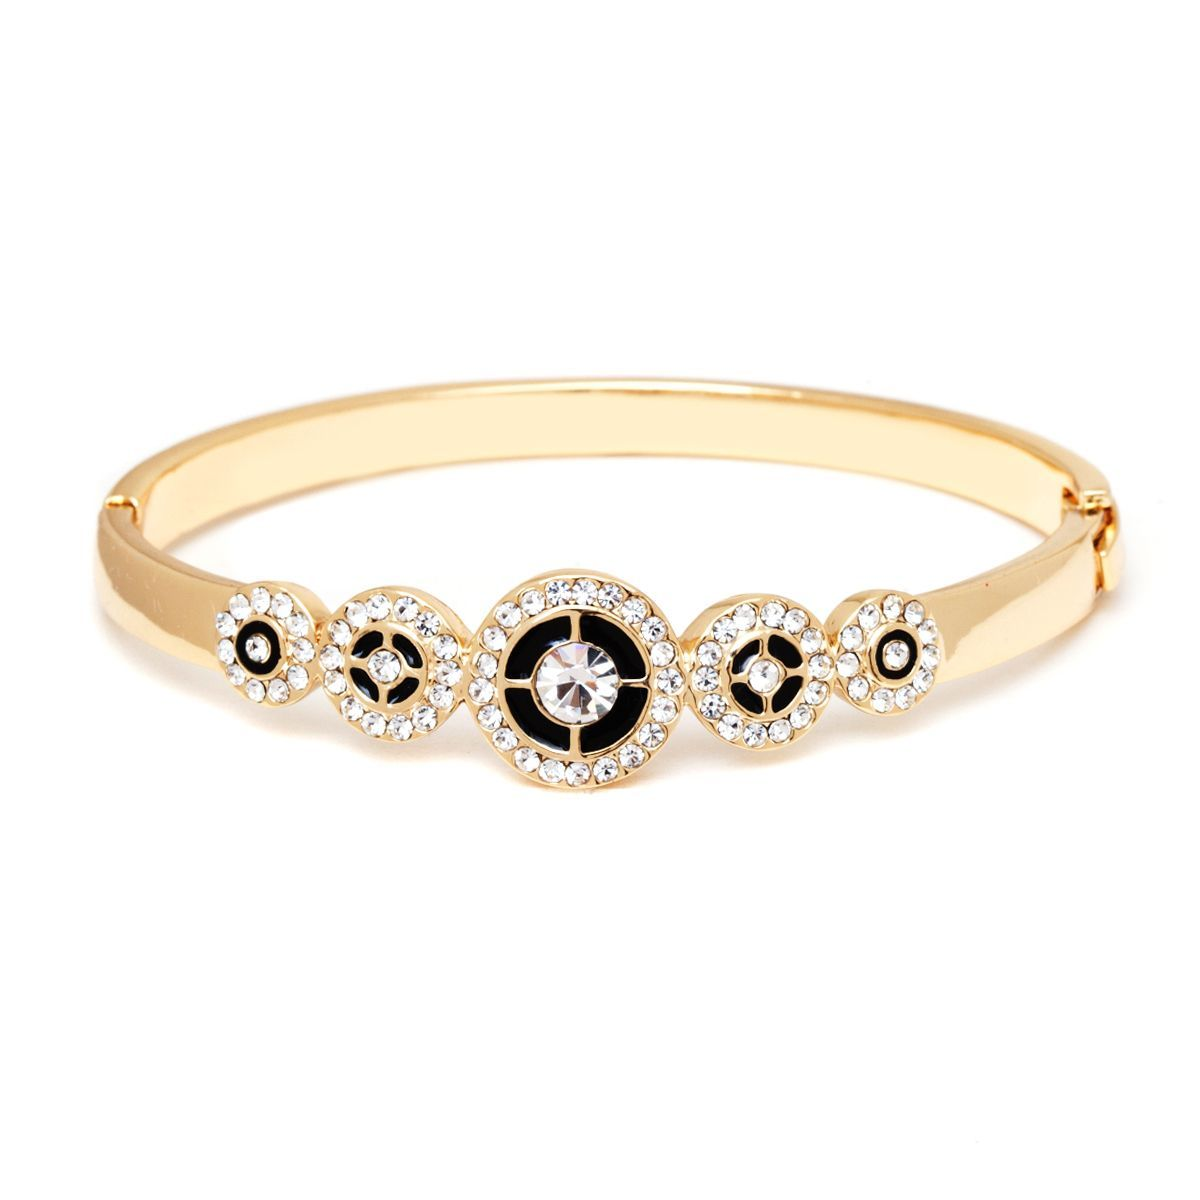 Peermont jewelry k goldplated gold and white circle bangle